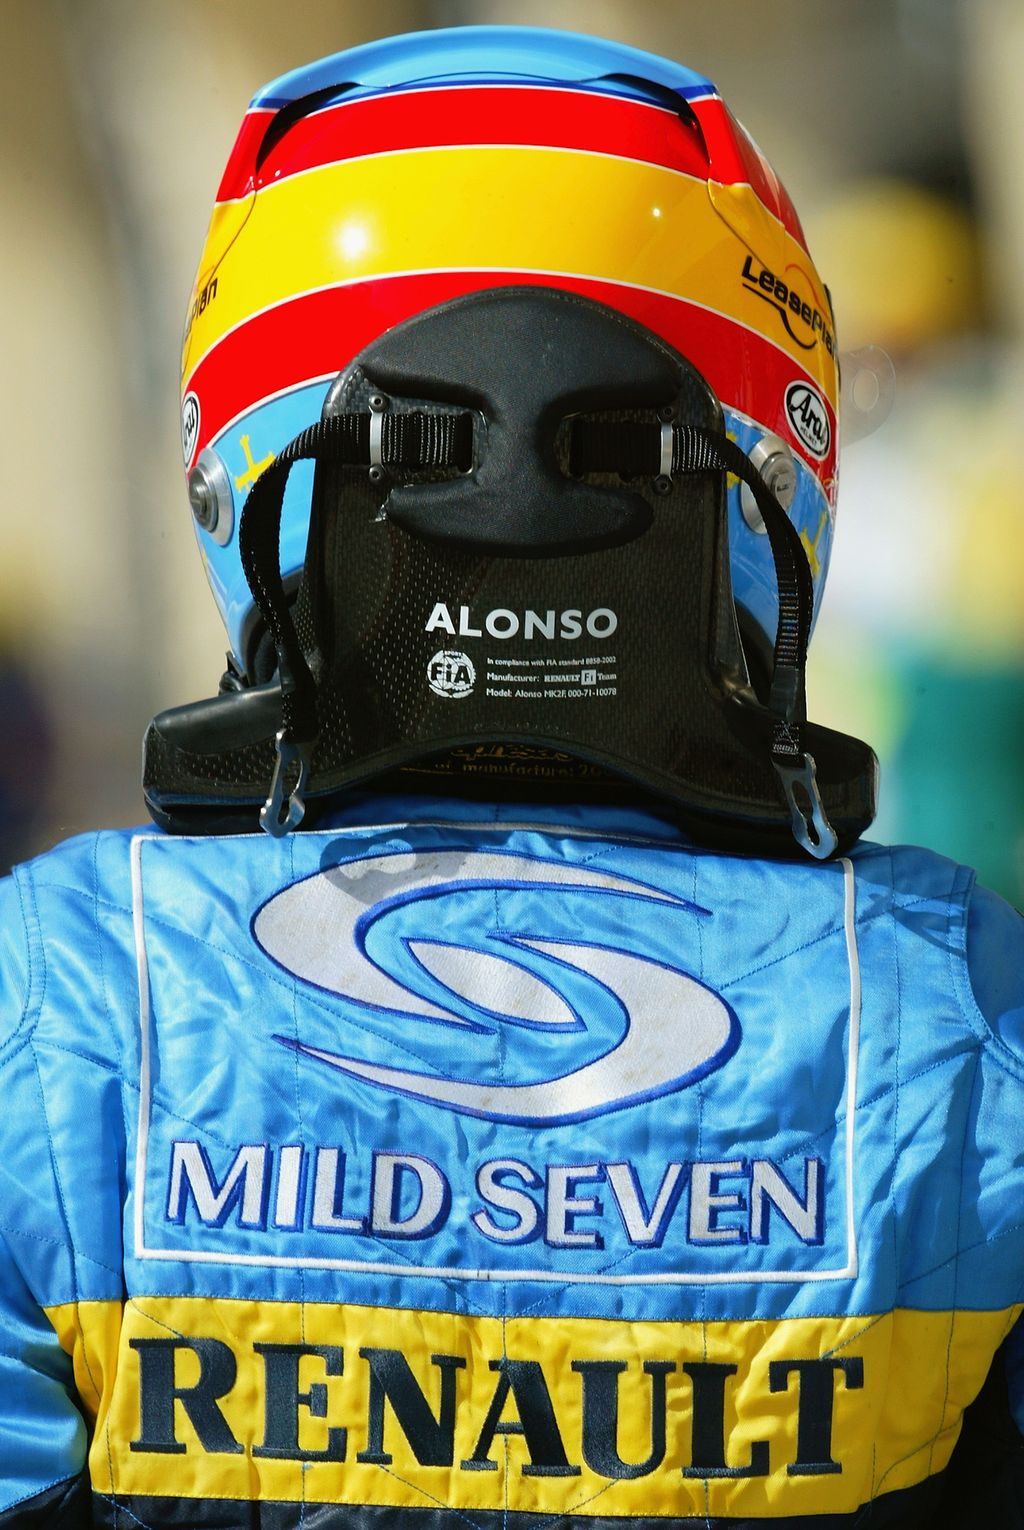 SAKHIR, BAHRAIN - APRIL 2:  Fernando Alonso of Spain and Renault wears the HANS safety device during practice for the Bahrain F1 Grand Prix at the Bahrain Racing Circuit on April 2, 2004 in Sakhir, Bahrain  (Photo by Bryn Lennon/Getty Images)